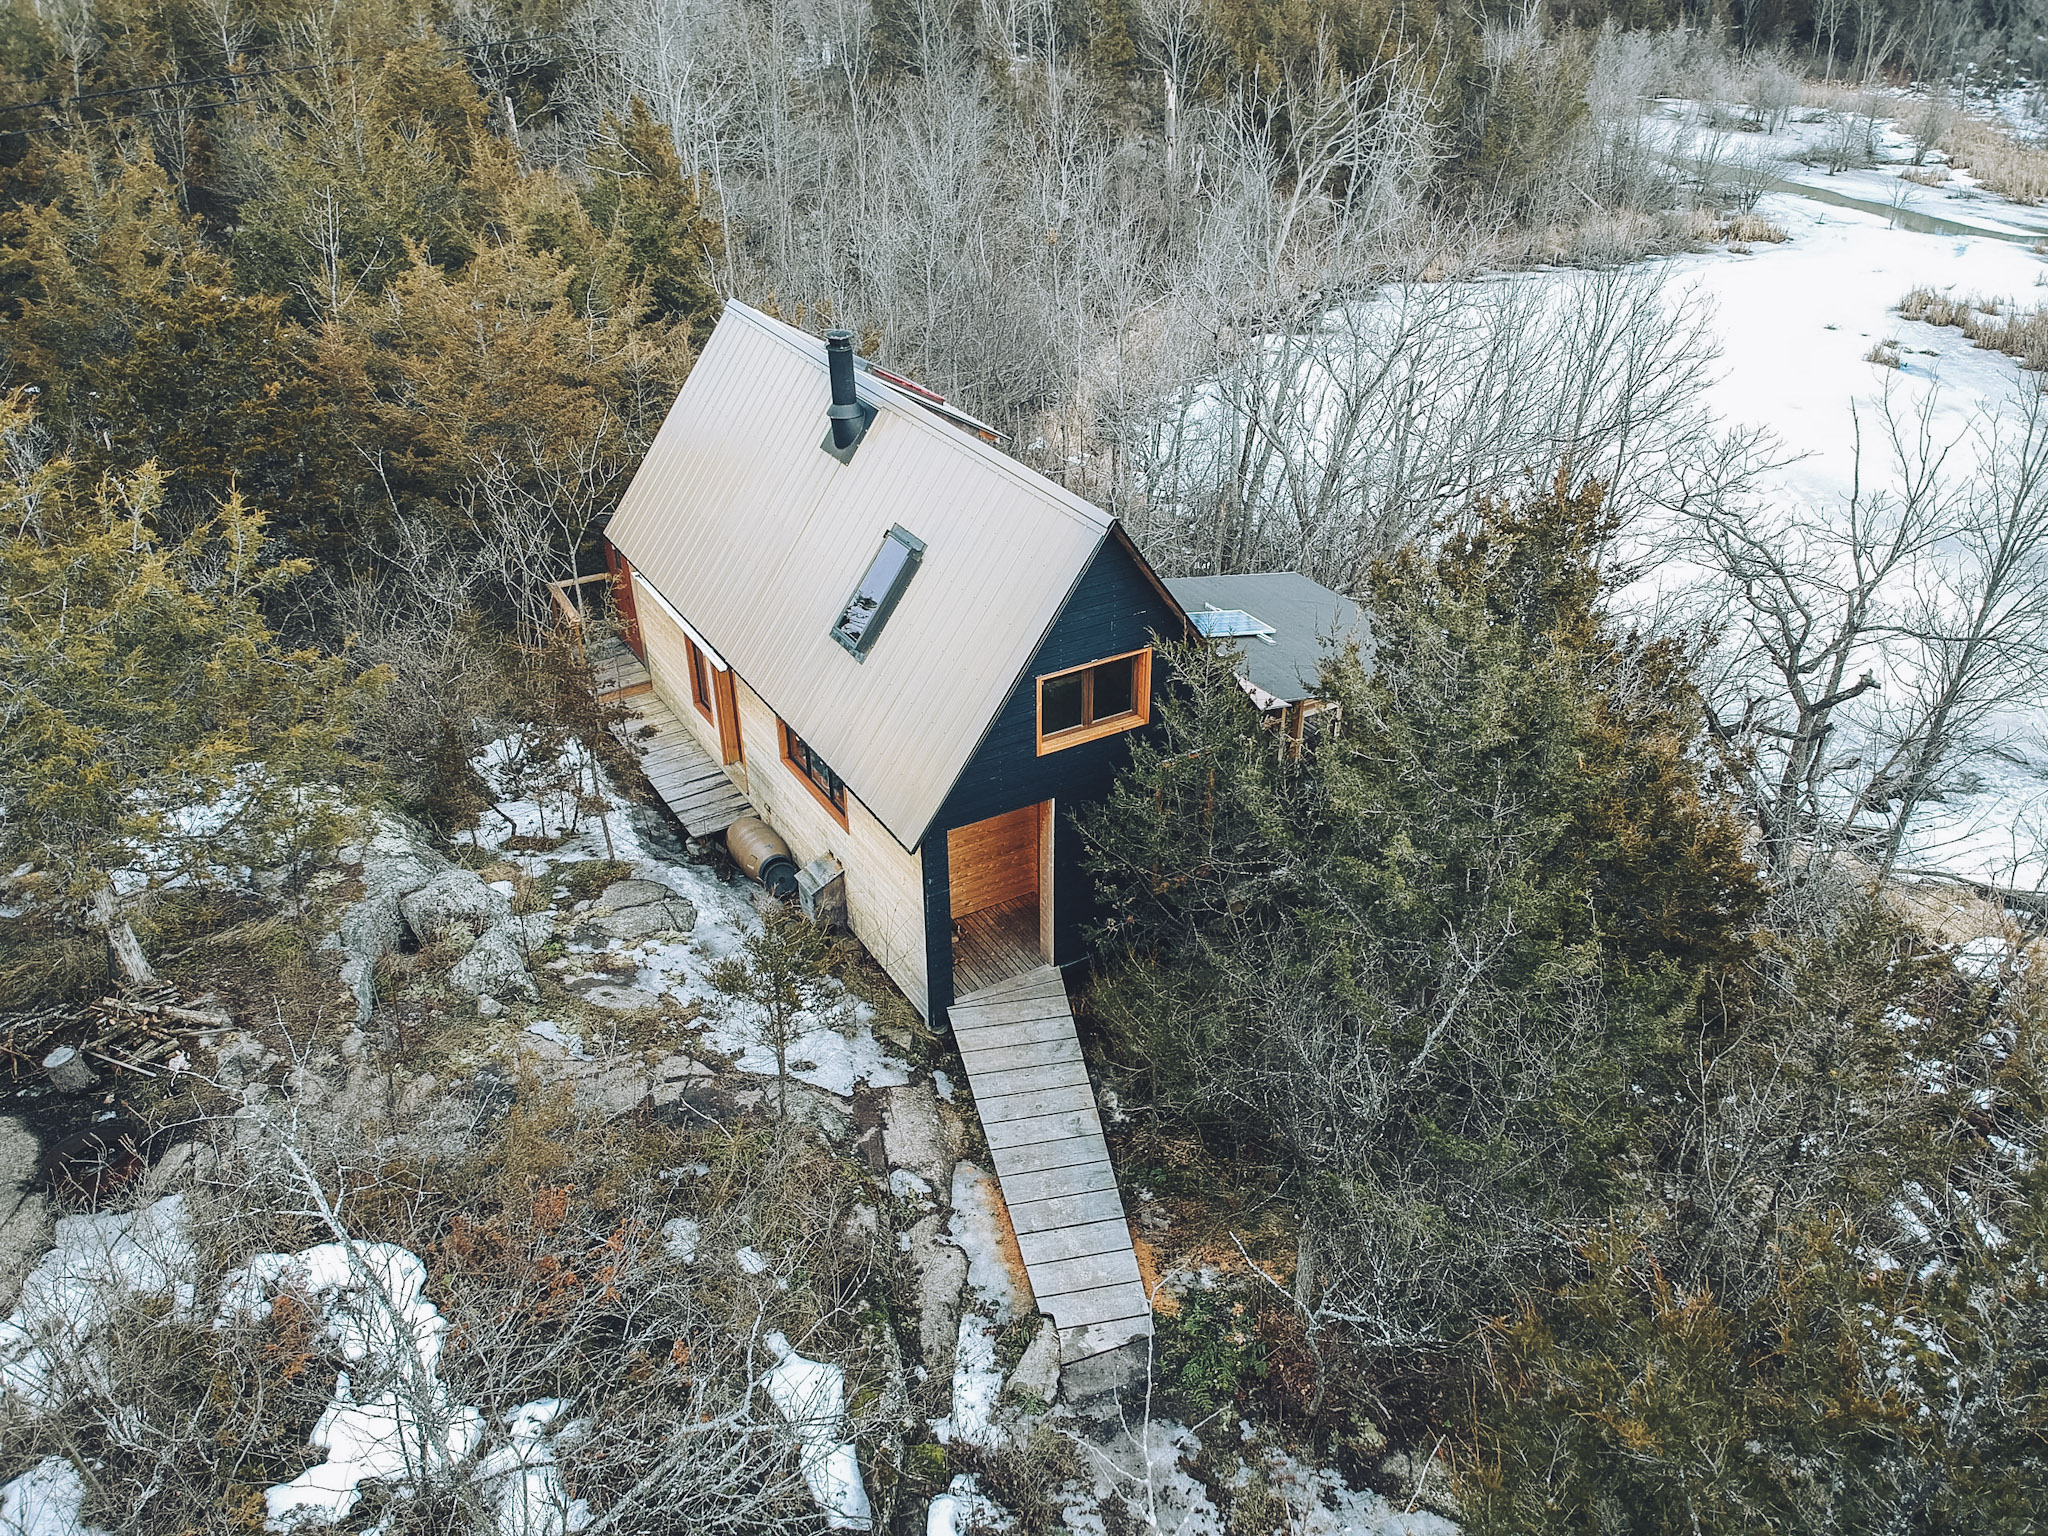 Raven House in the 1000 Islands Region of Ontario